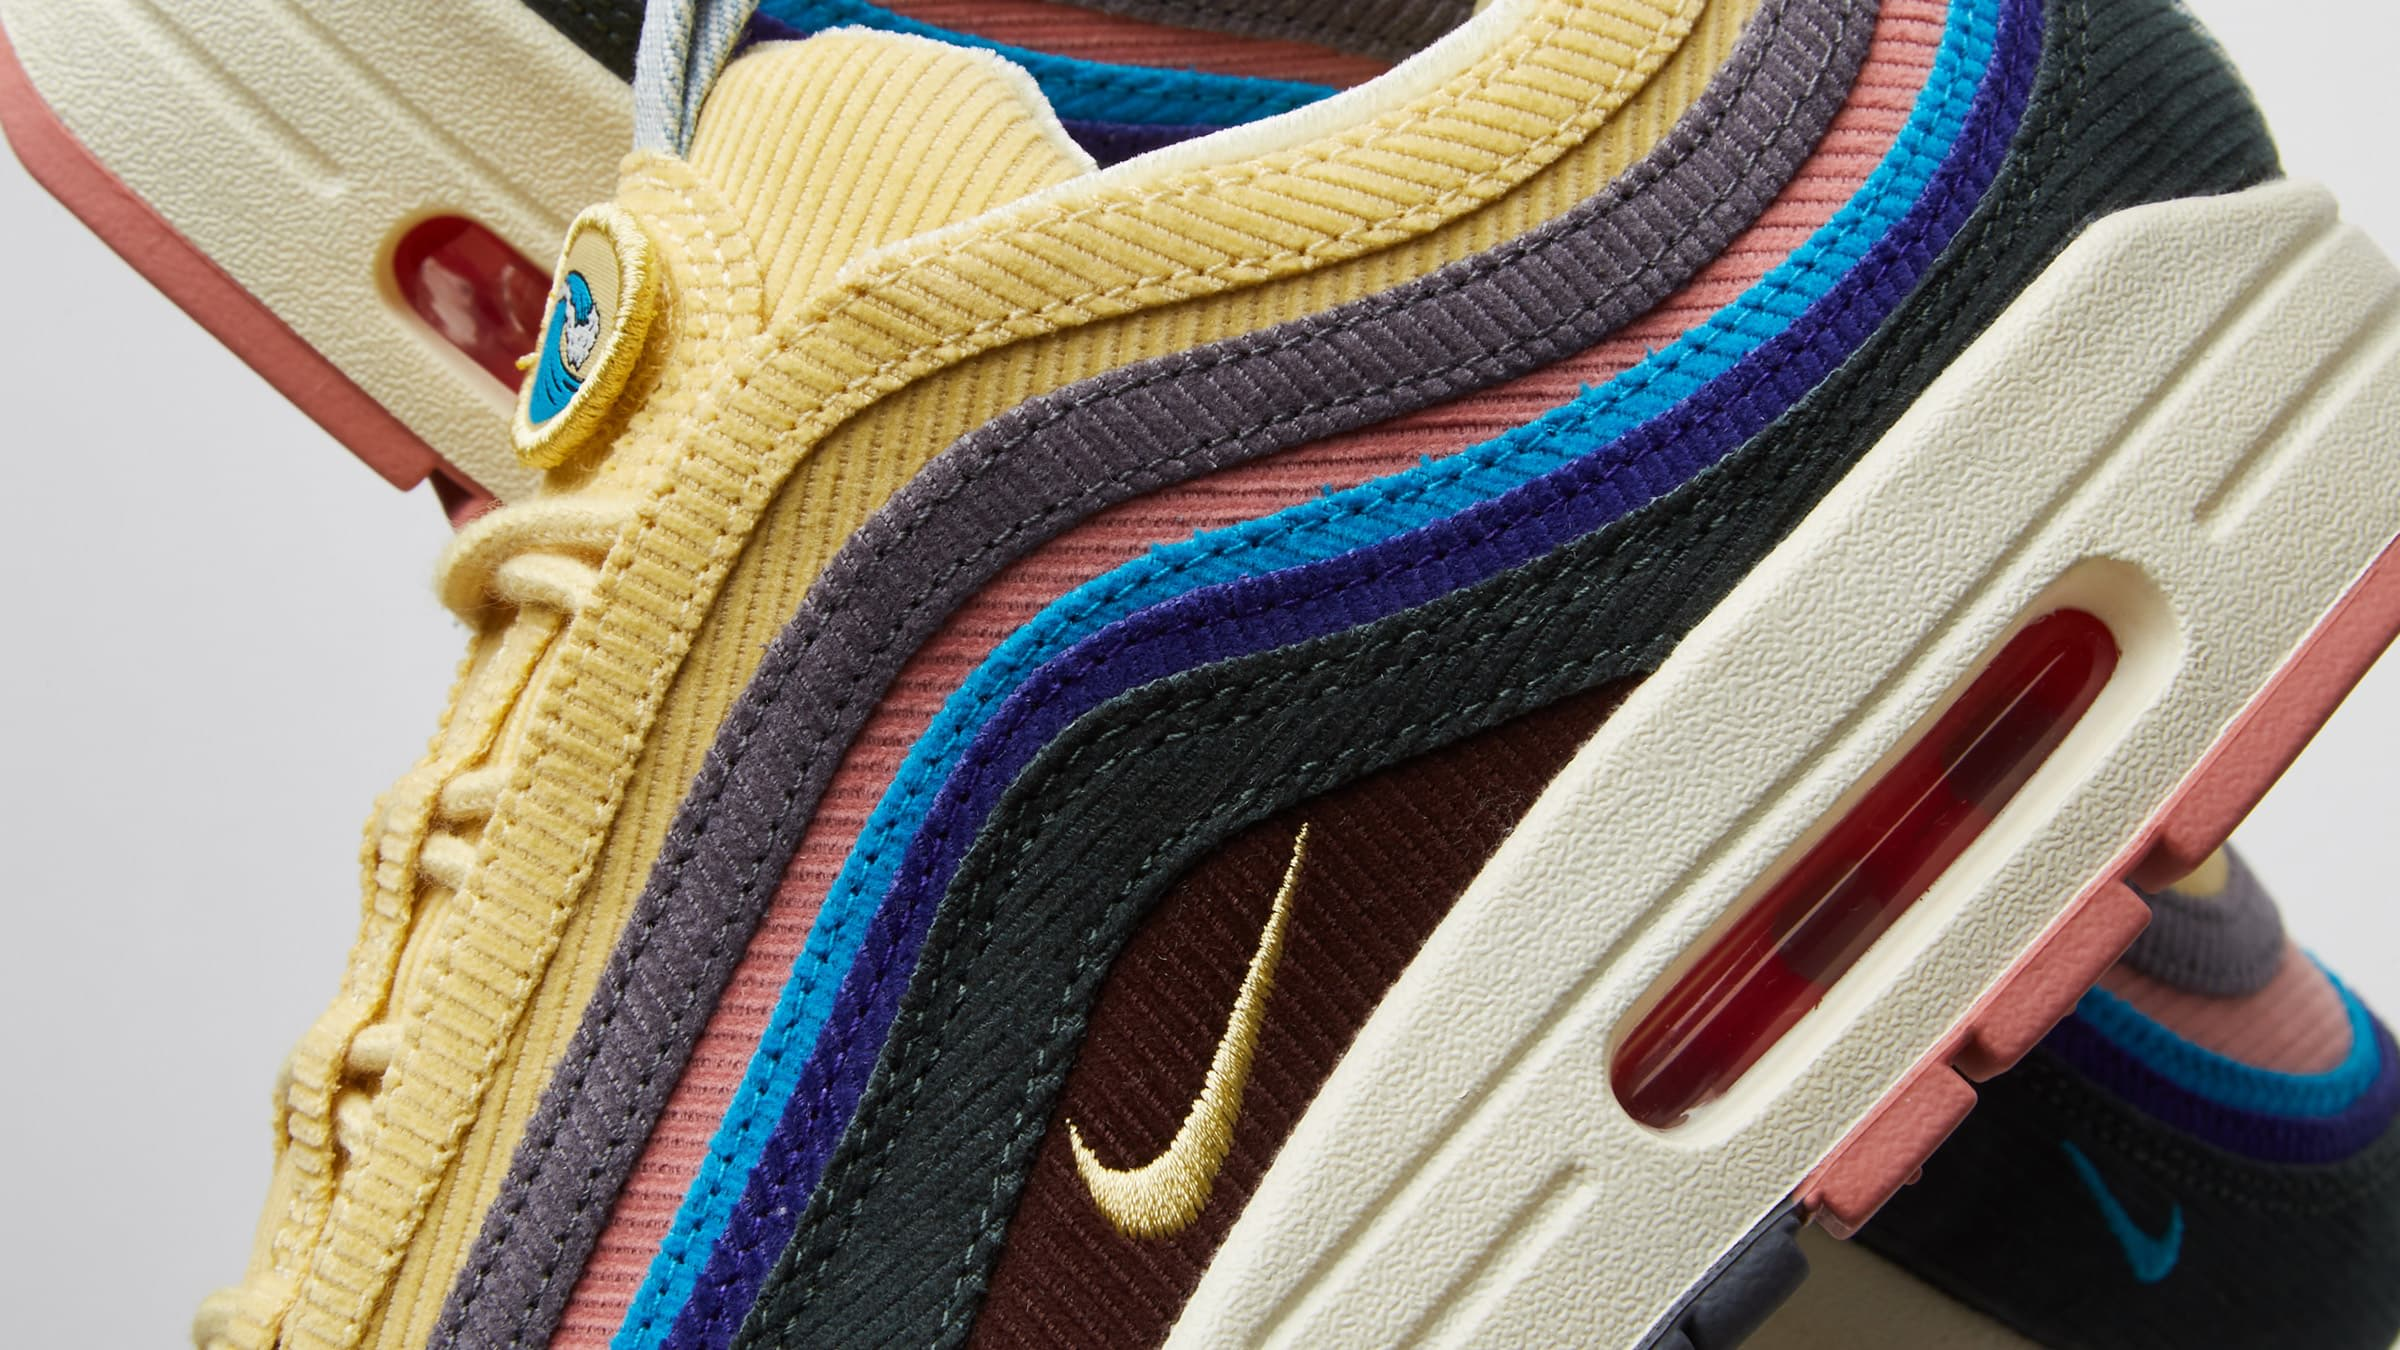 97 x sean wotherspoon